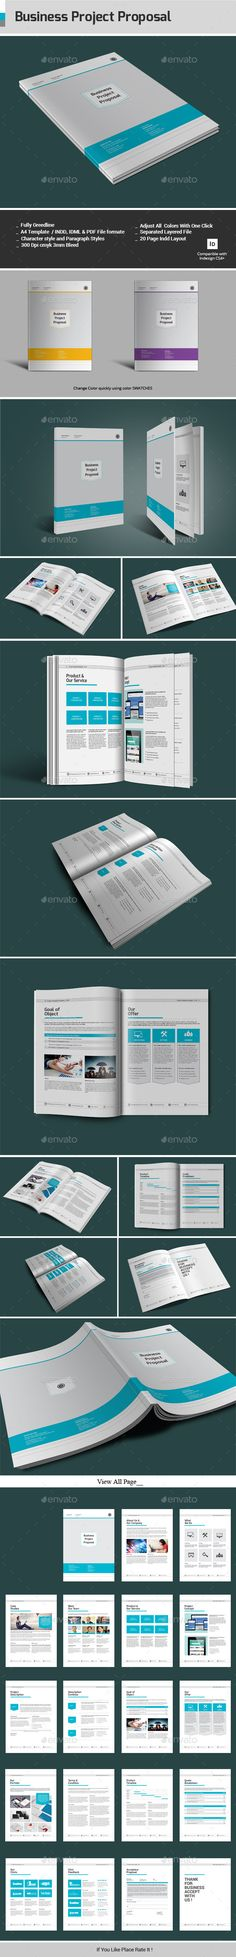 Three Rings Project Proposal Template Proposal templates - project proposal template word download